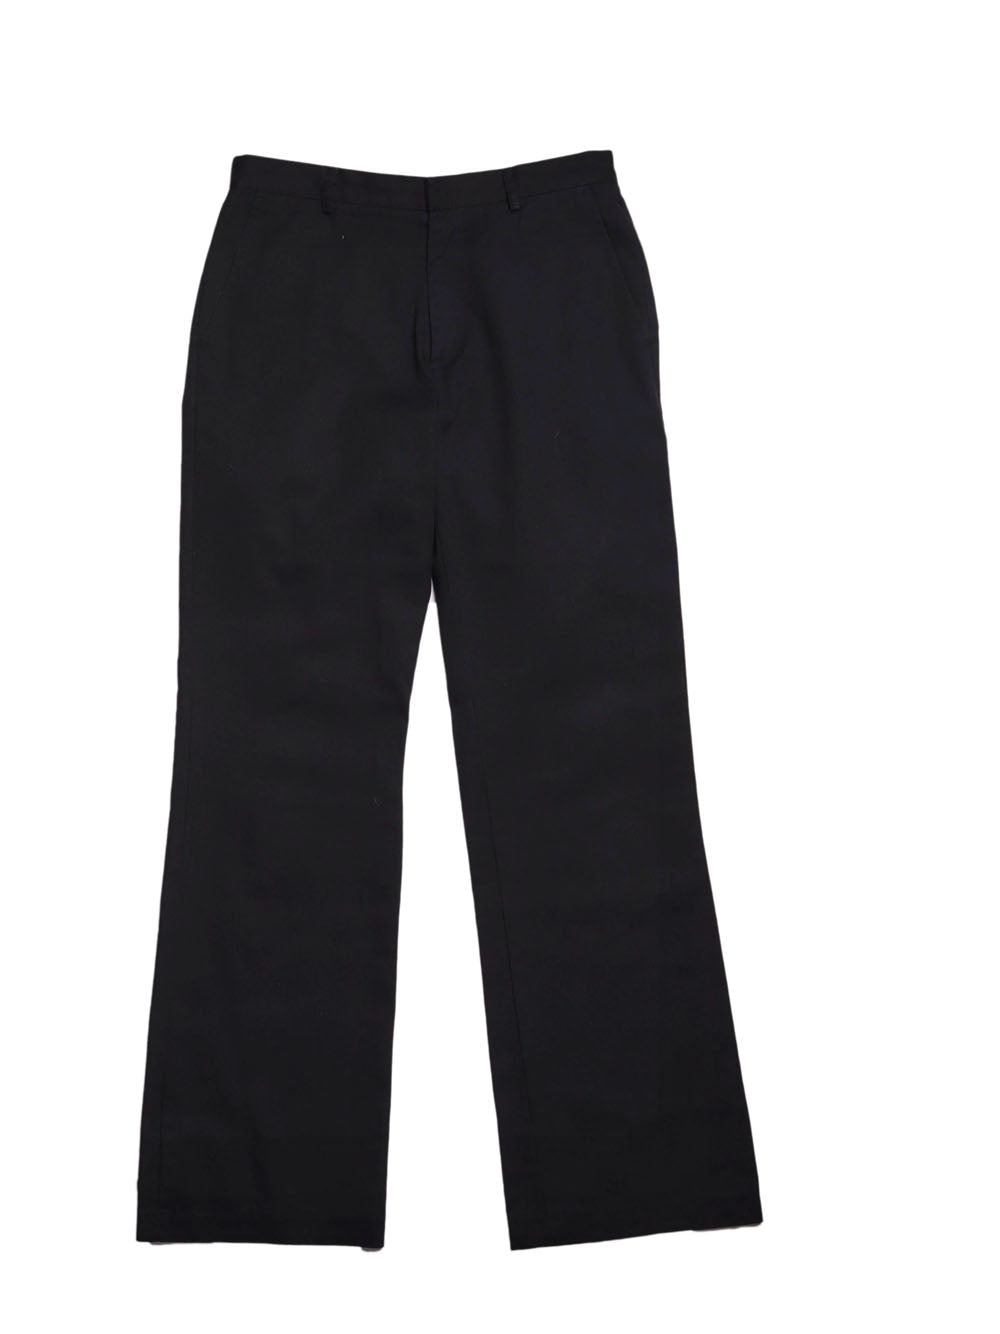 Front photo of Preloved Sasch-Firenze Black Woman's trousers - size 12/L